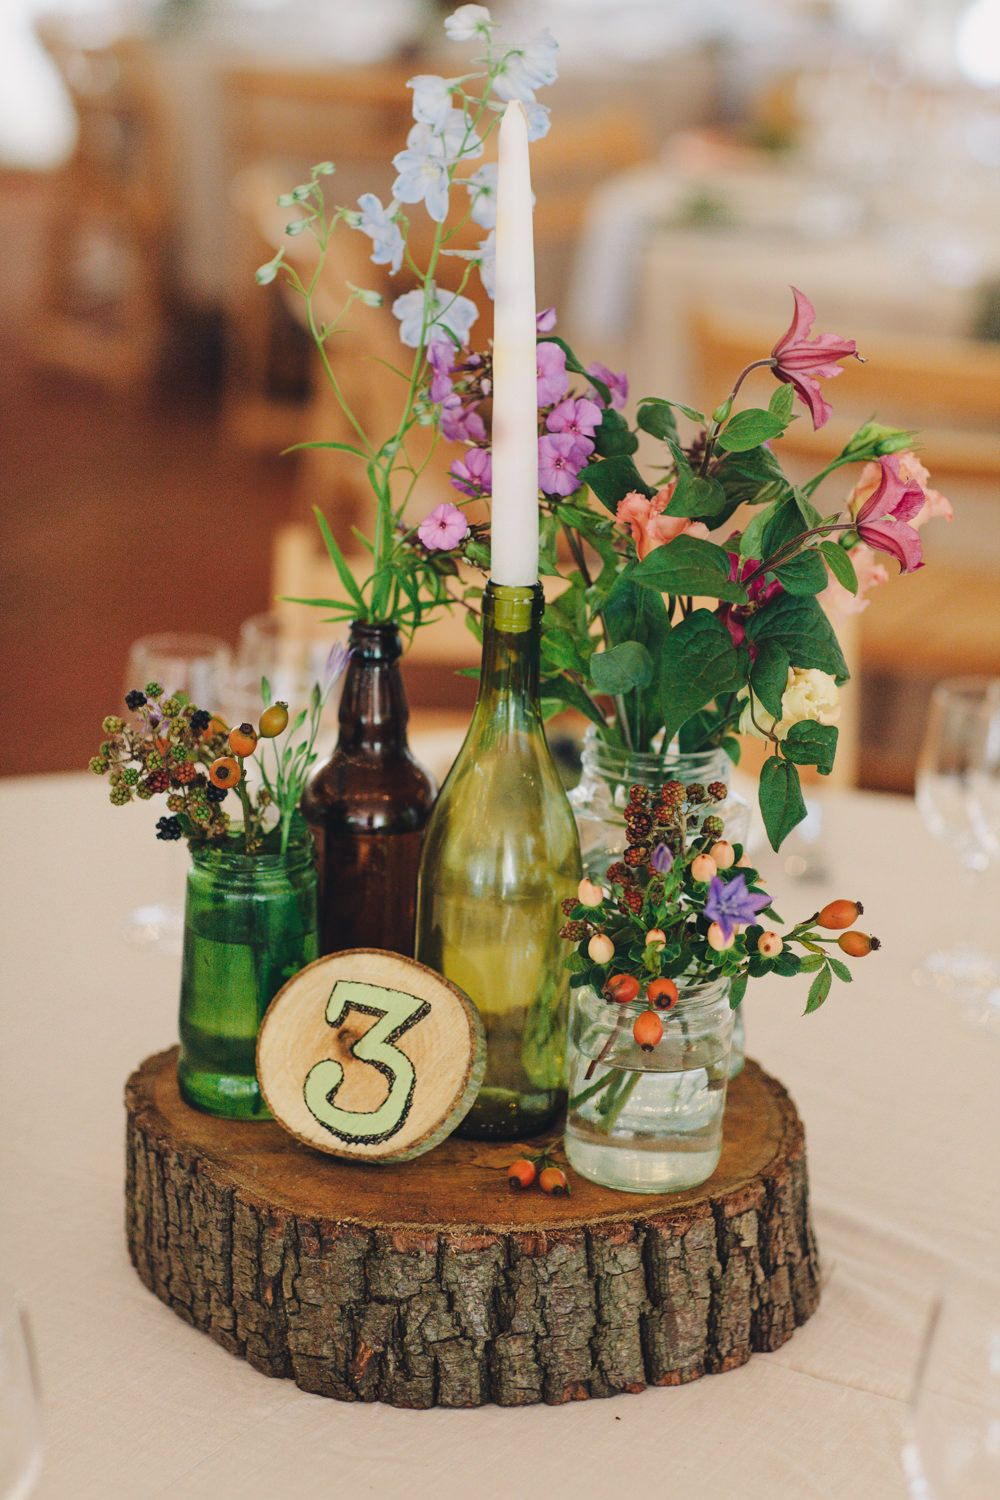 Tree stump ideas for wedding - A Lusan Mandongus Gown For A Wedding At Wise Wedding Venue With A Bright Colour Theme And Rustic Elements And Photography By Lm Photography